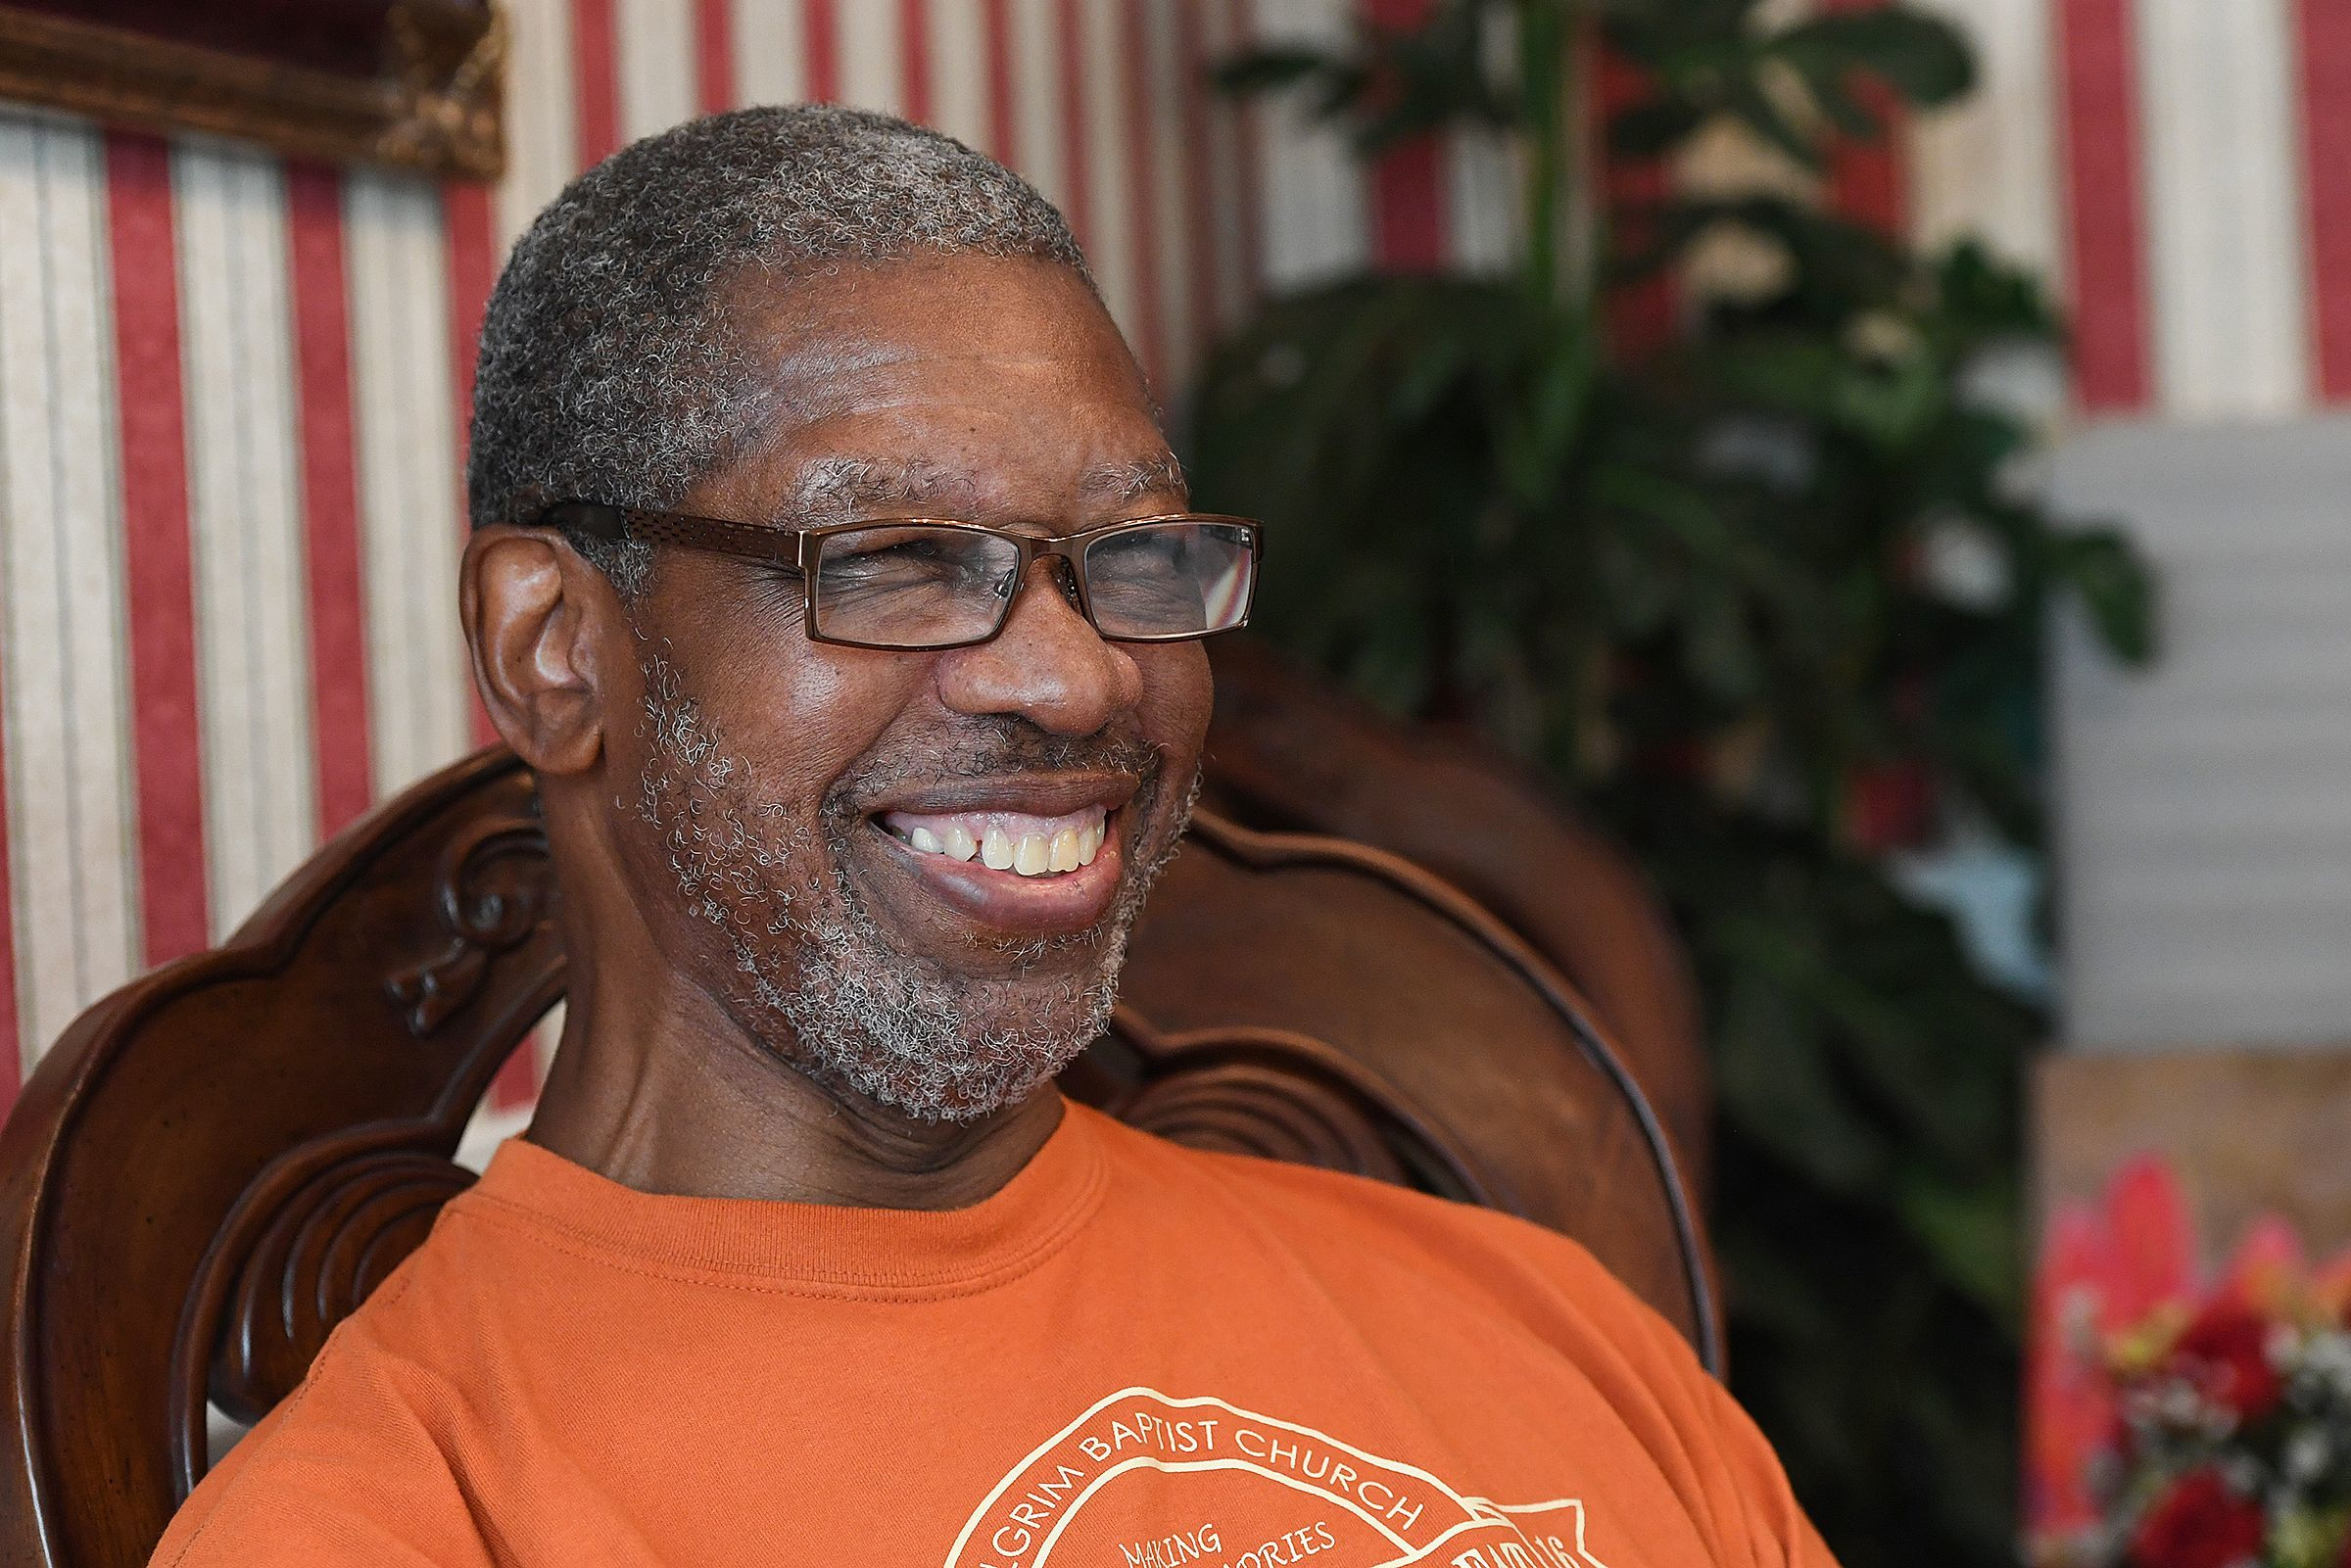 Hall of Fame cross country and track coach Willie Wooden, who was diagnosed with ALS in August 2017, laughs during an interview at his home in Simpsonville July 25.